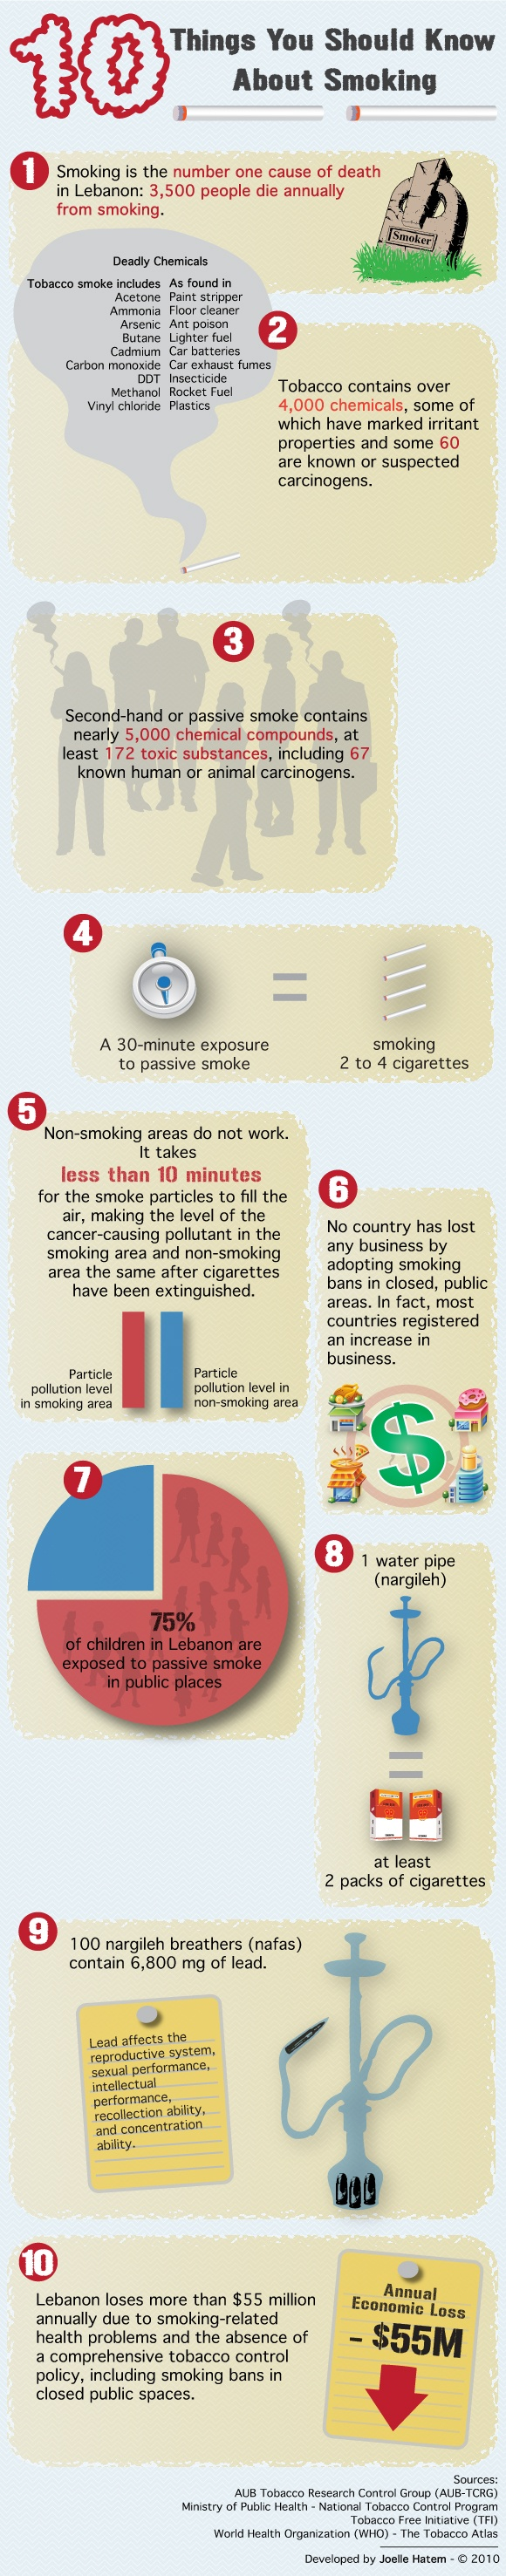 best images about smoking infographics smoking 10 things you should know about smoking in is an infographic i designed to support the new tobacco control bill that has been submitted to the